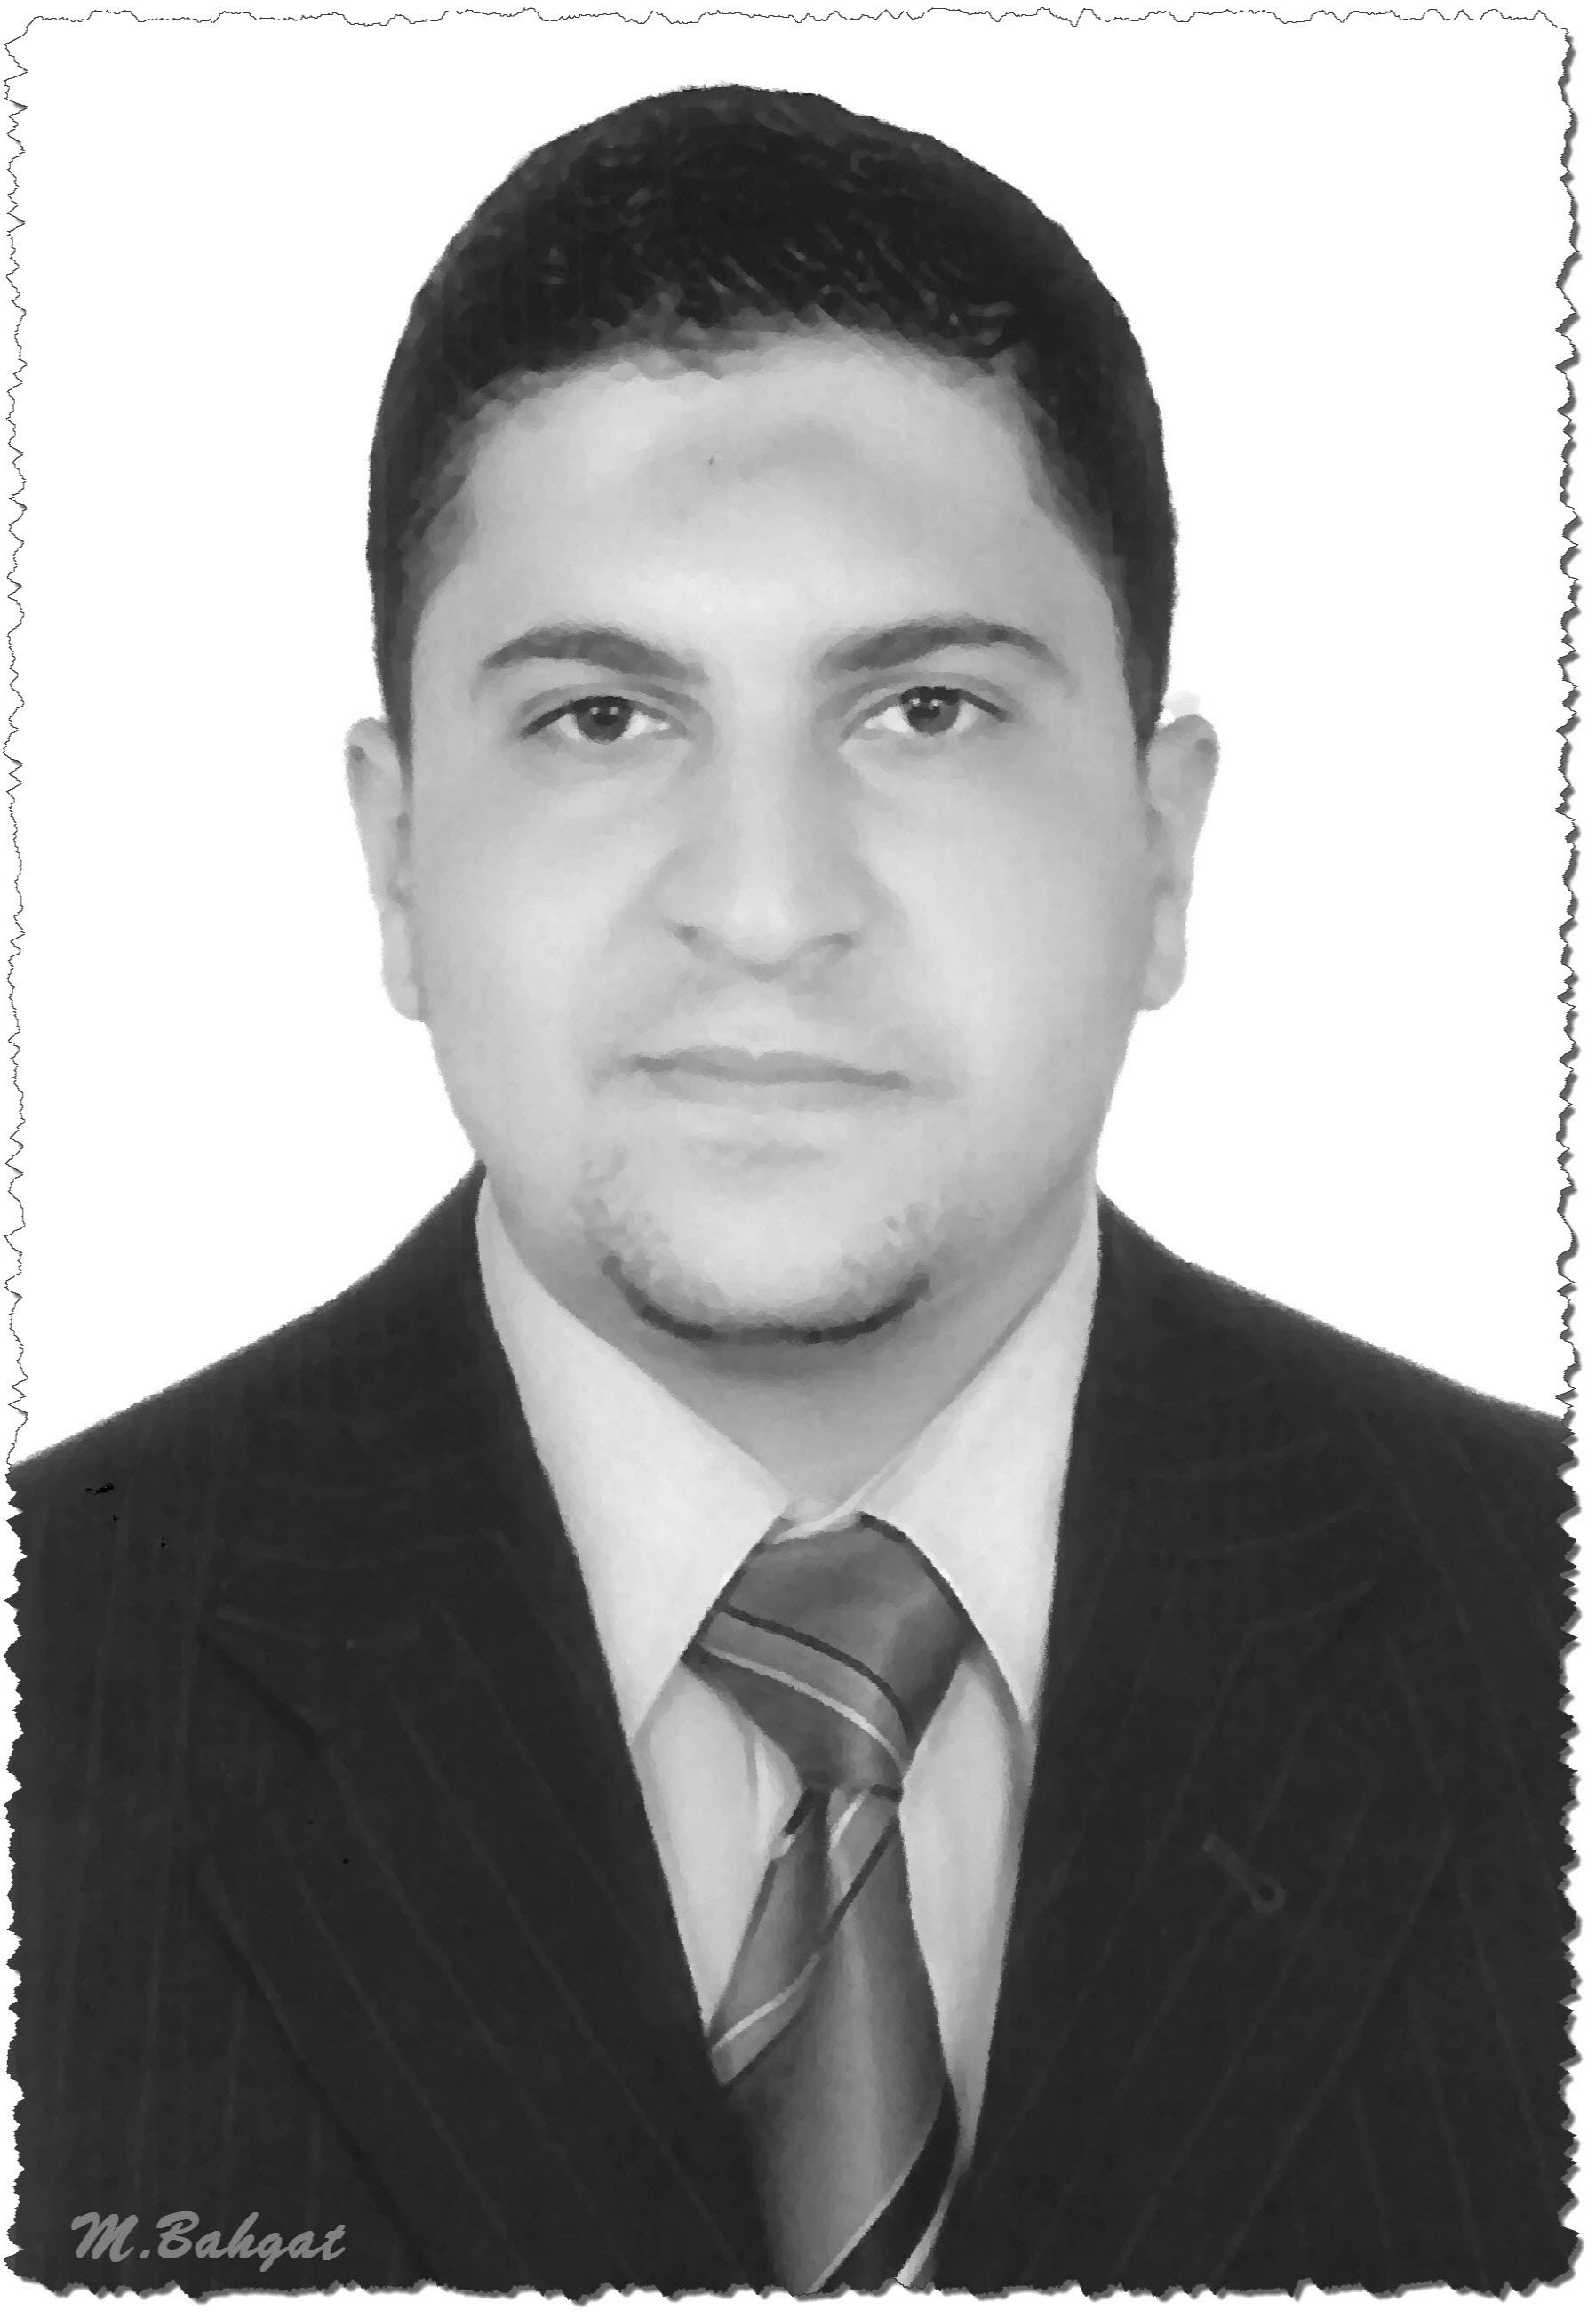 Mohamed Bahgat profile picture